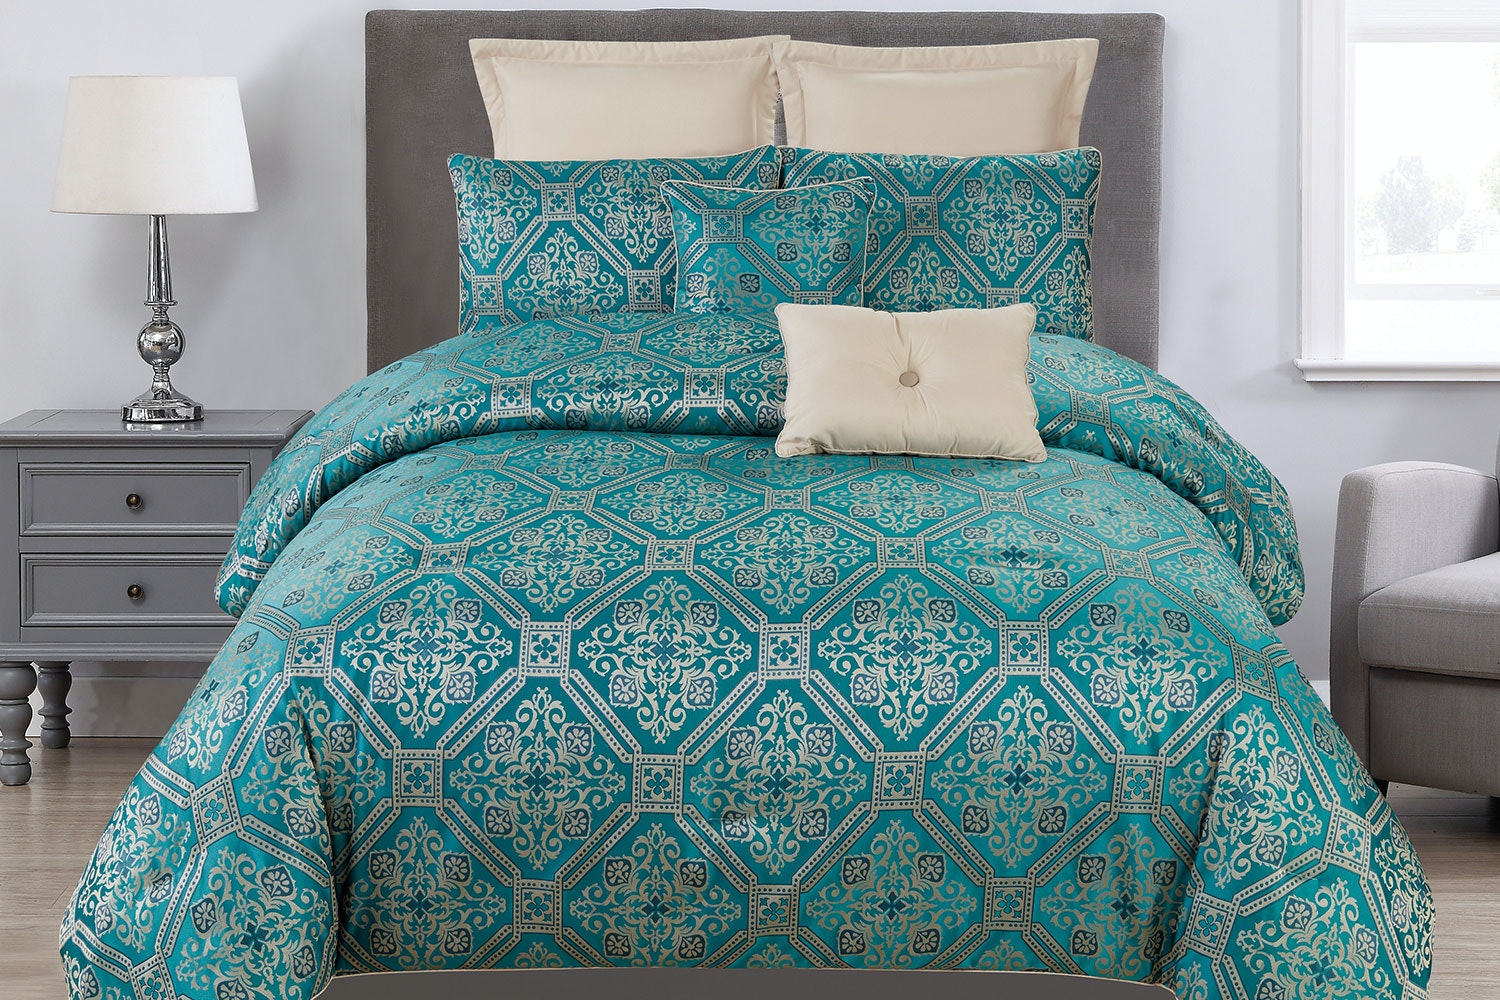 Raoul 8 Piece Comforter Set by Marlborough Textiles